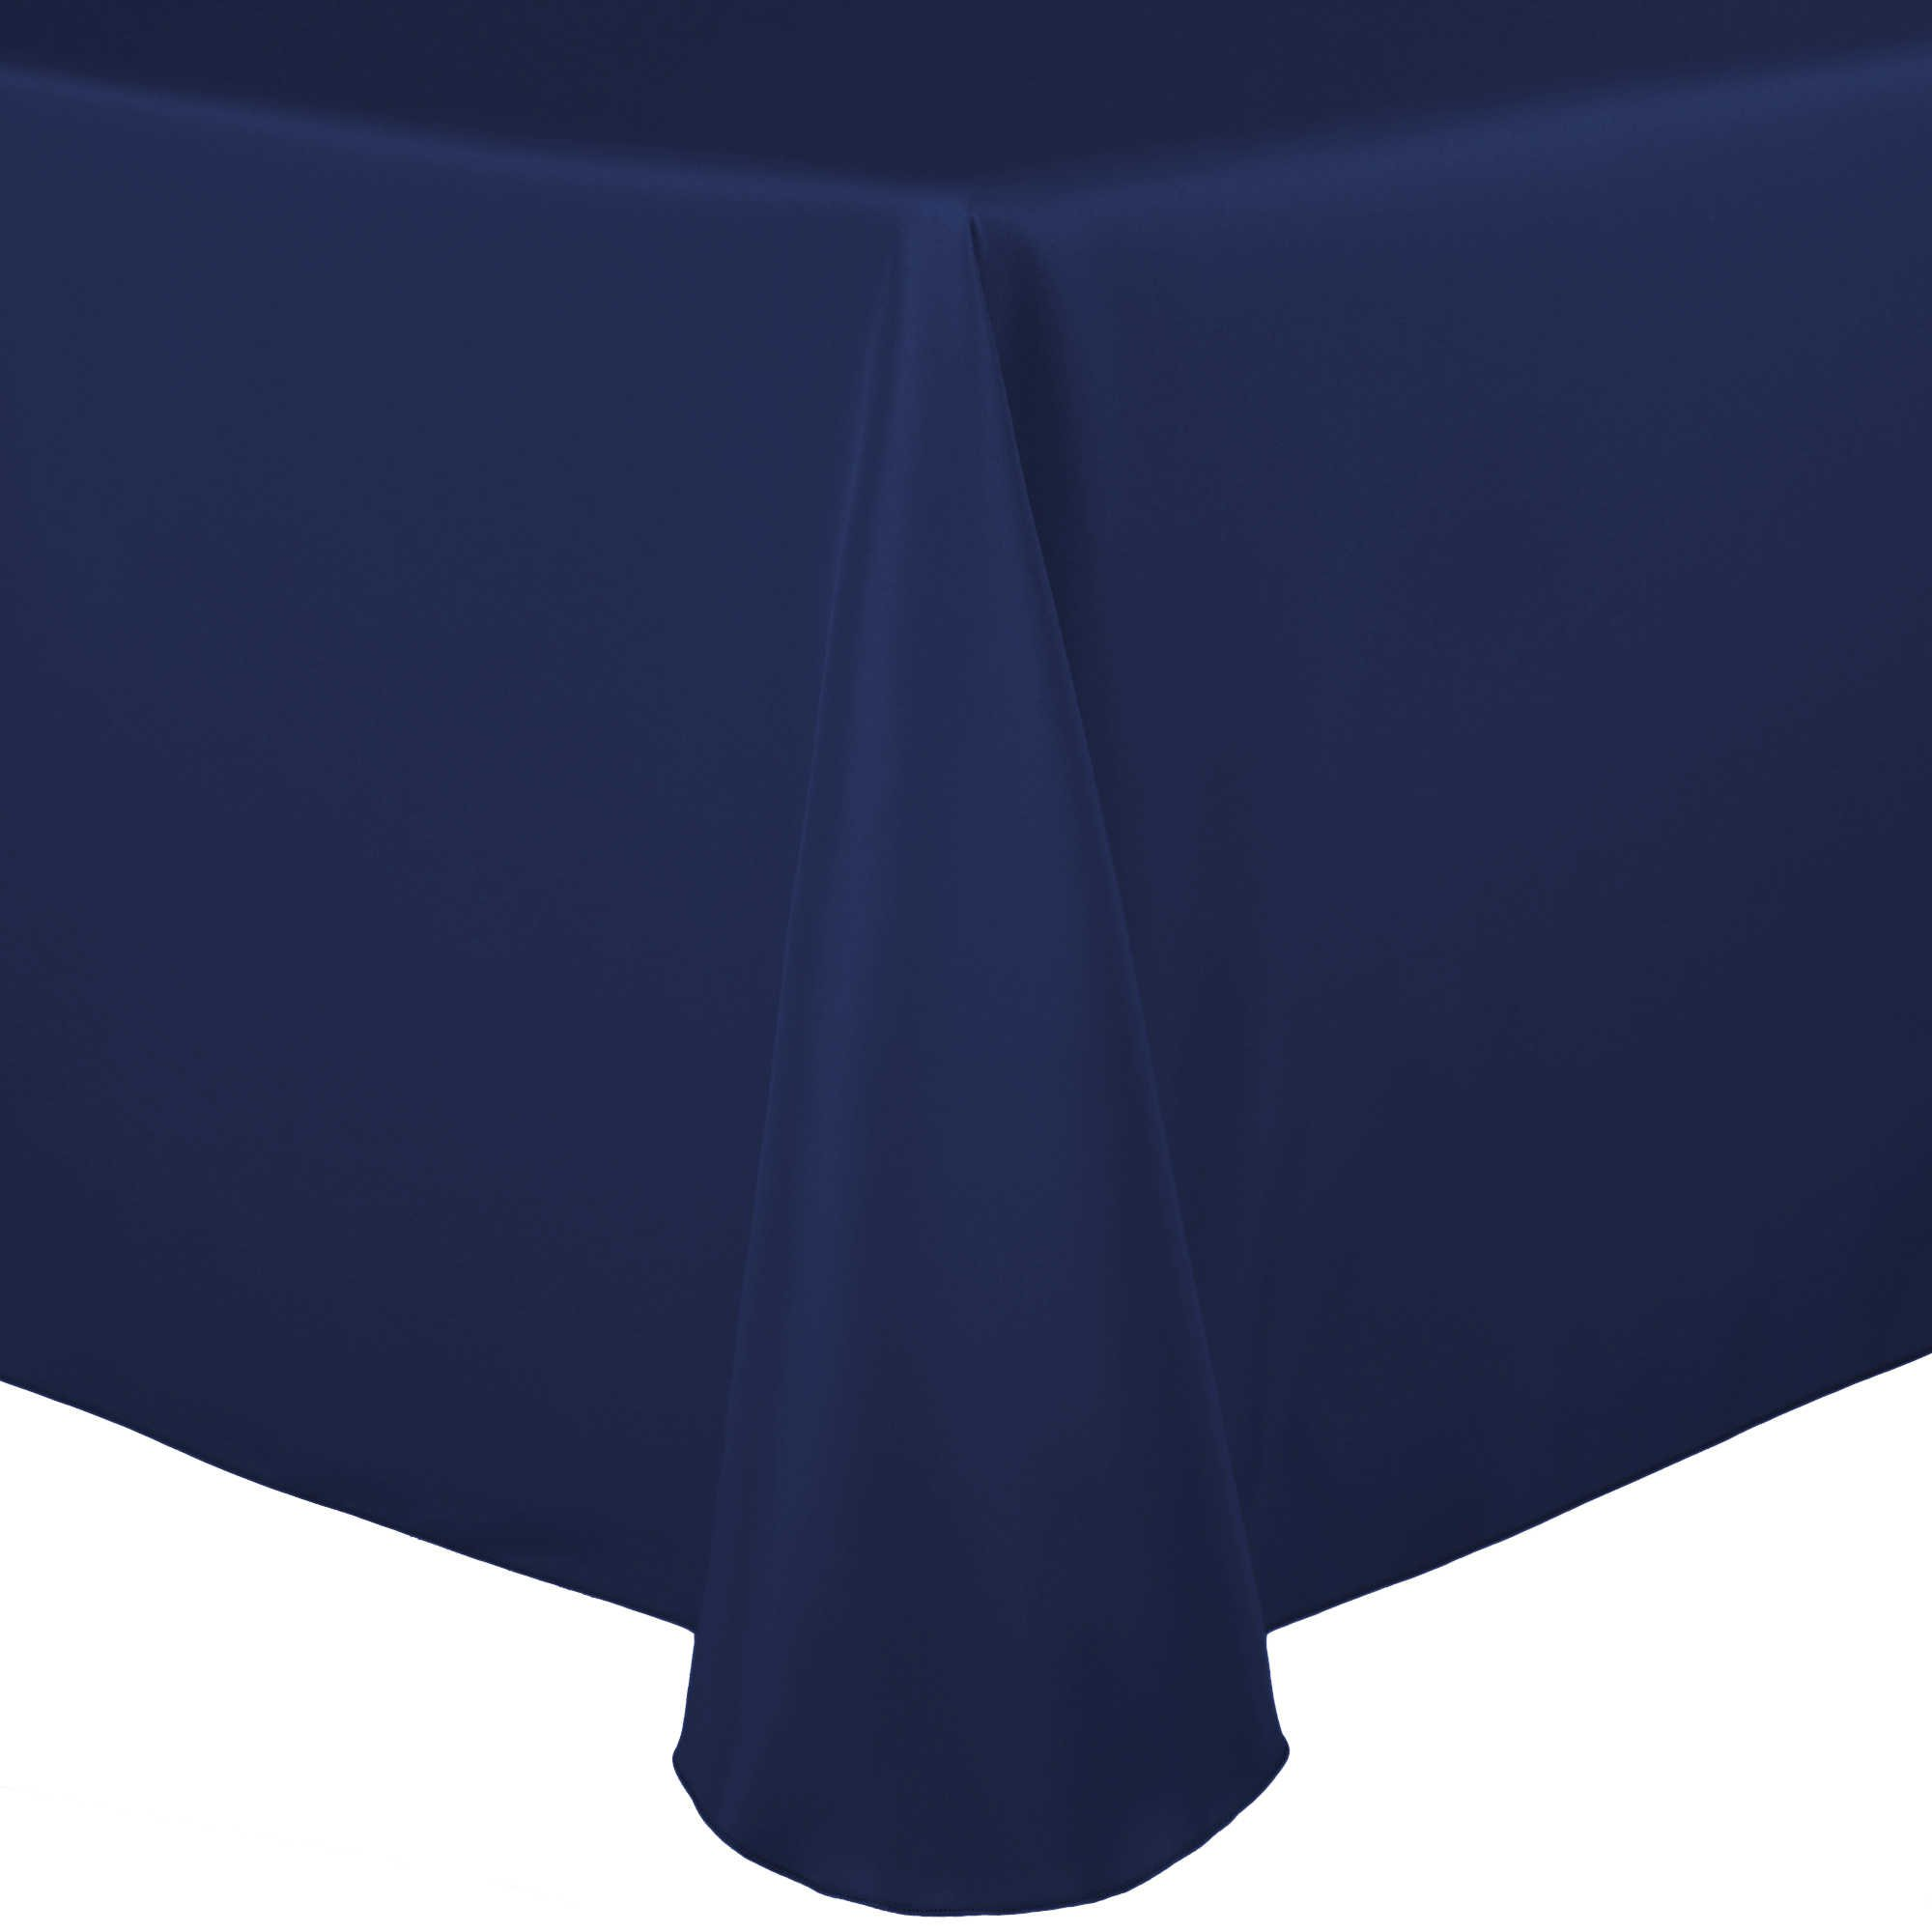 Ultimate Textile (10 Pack) 108 x 132-Inch Oval Polyester Linen Tablecloth - for Home Dining Tables, Navy Blue